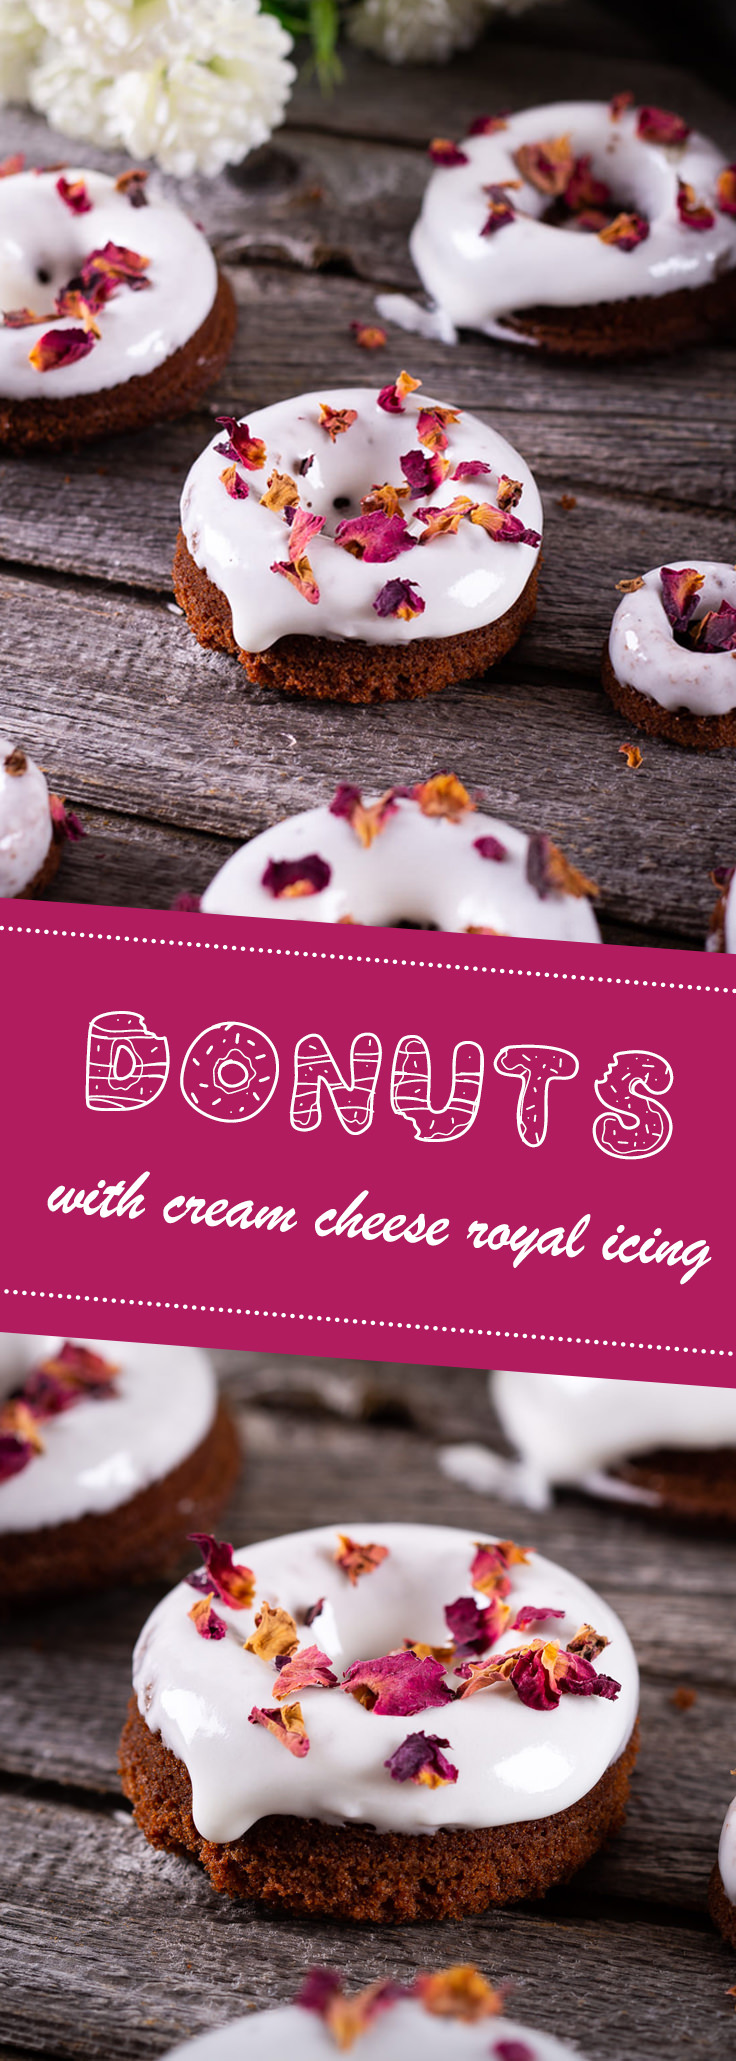 Pinterest donuts with rose and cream cheese royal icing